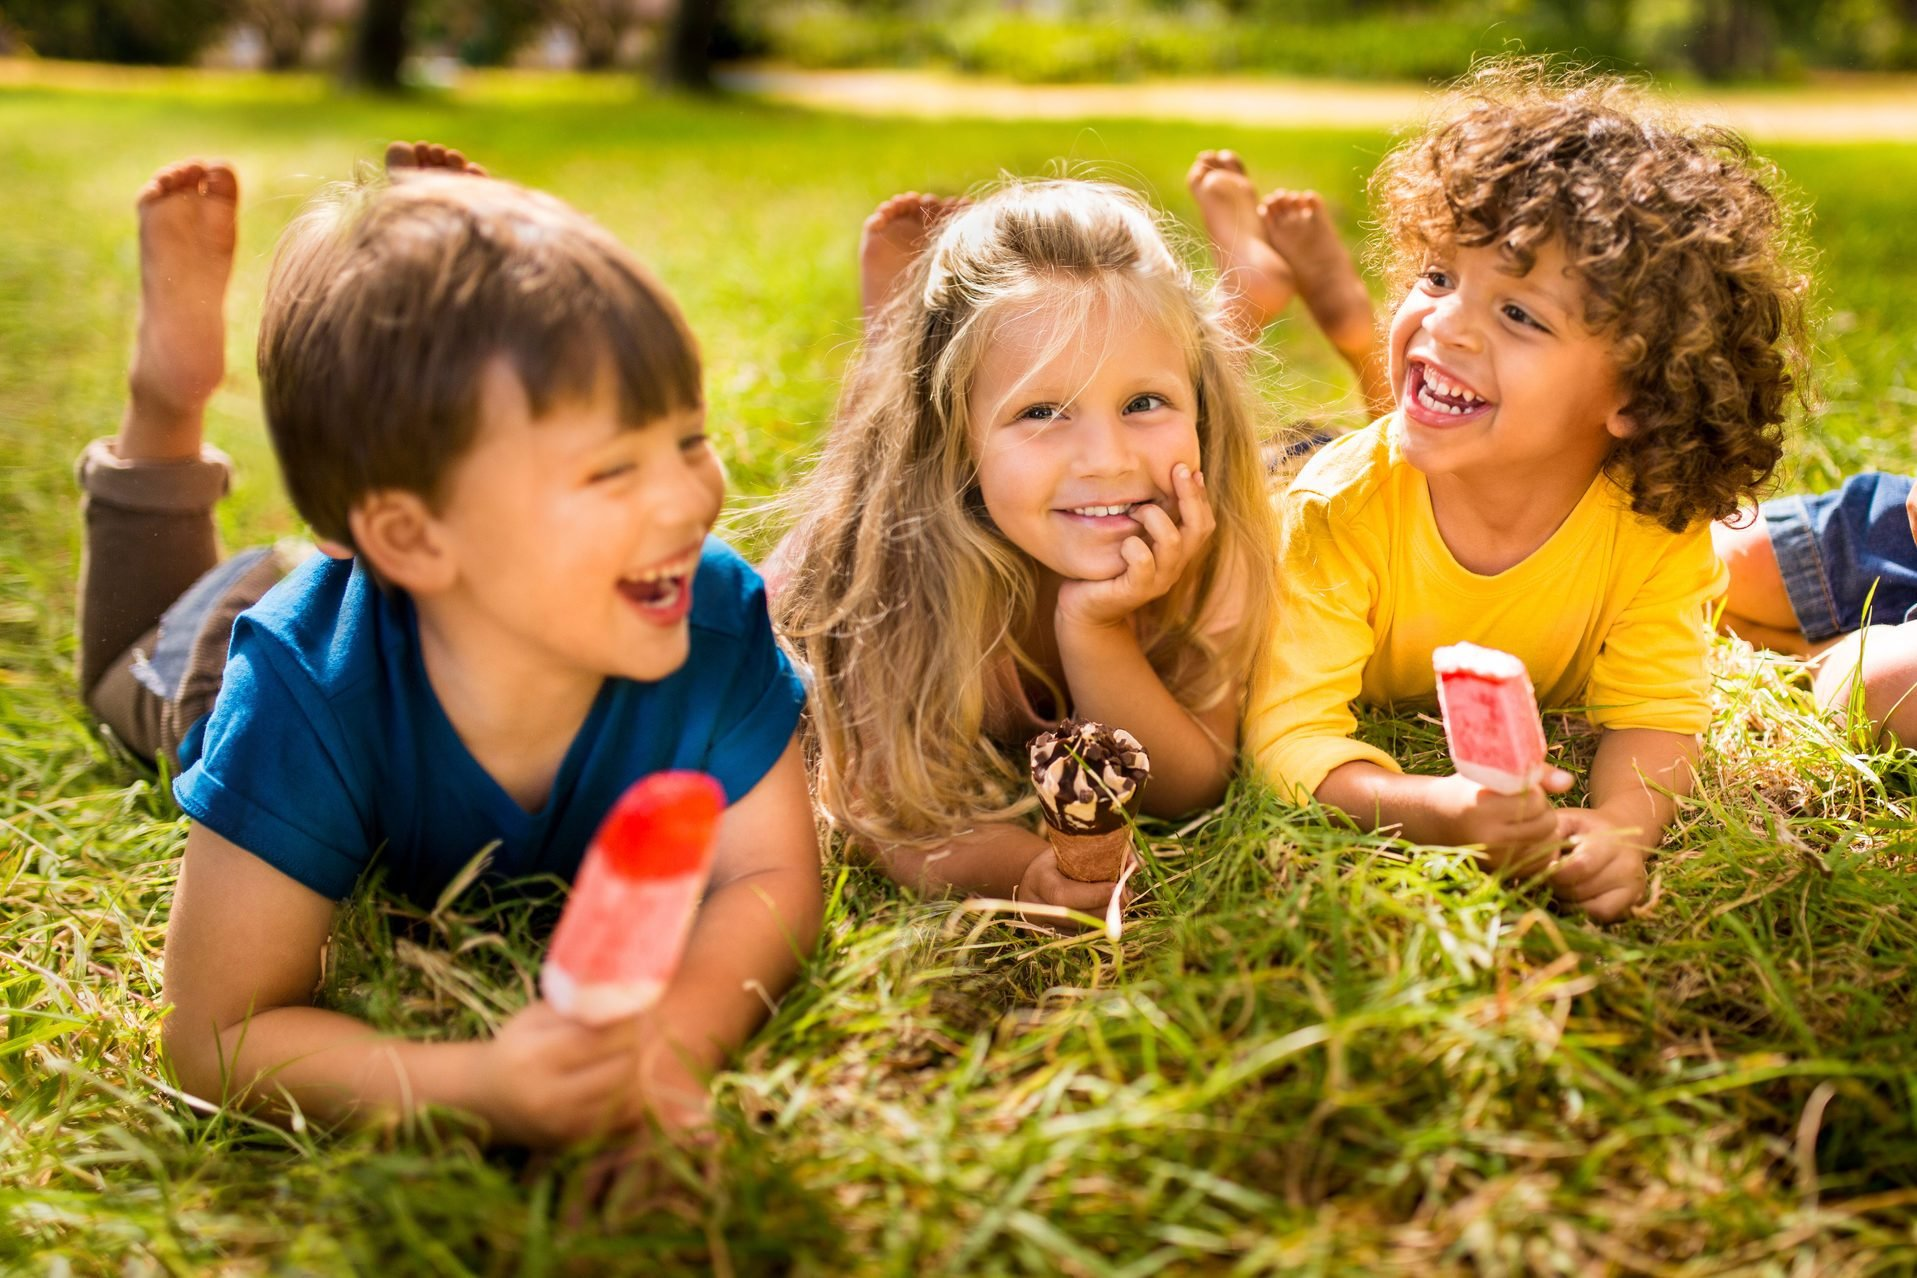 Children friends eating ice creams in park